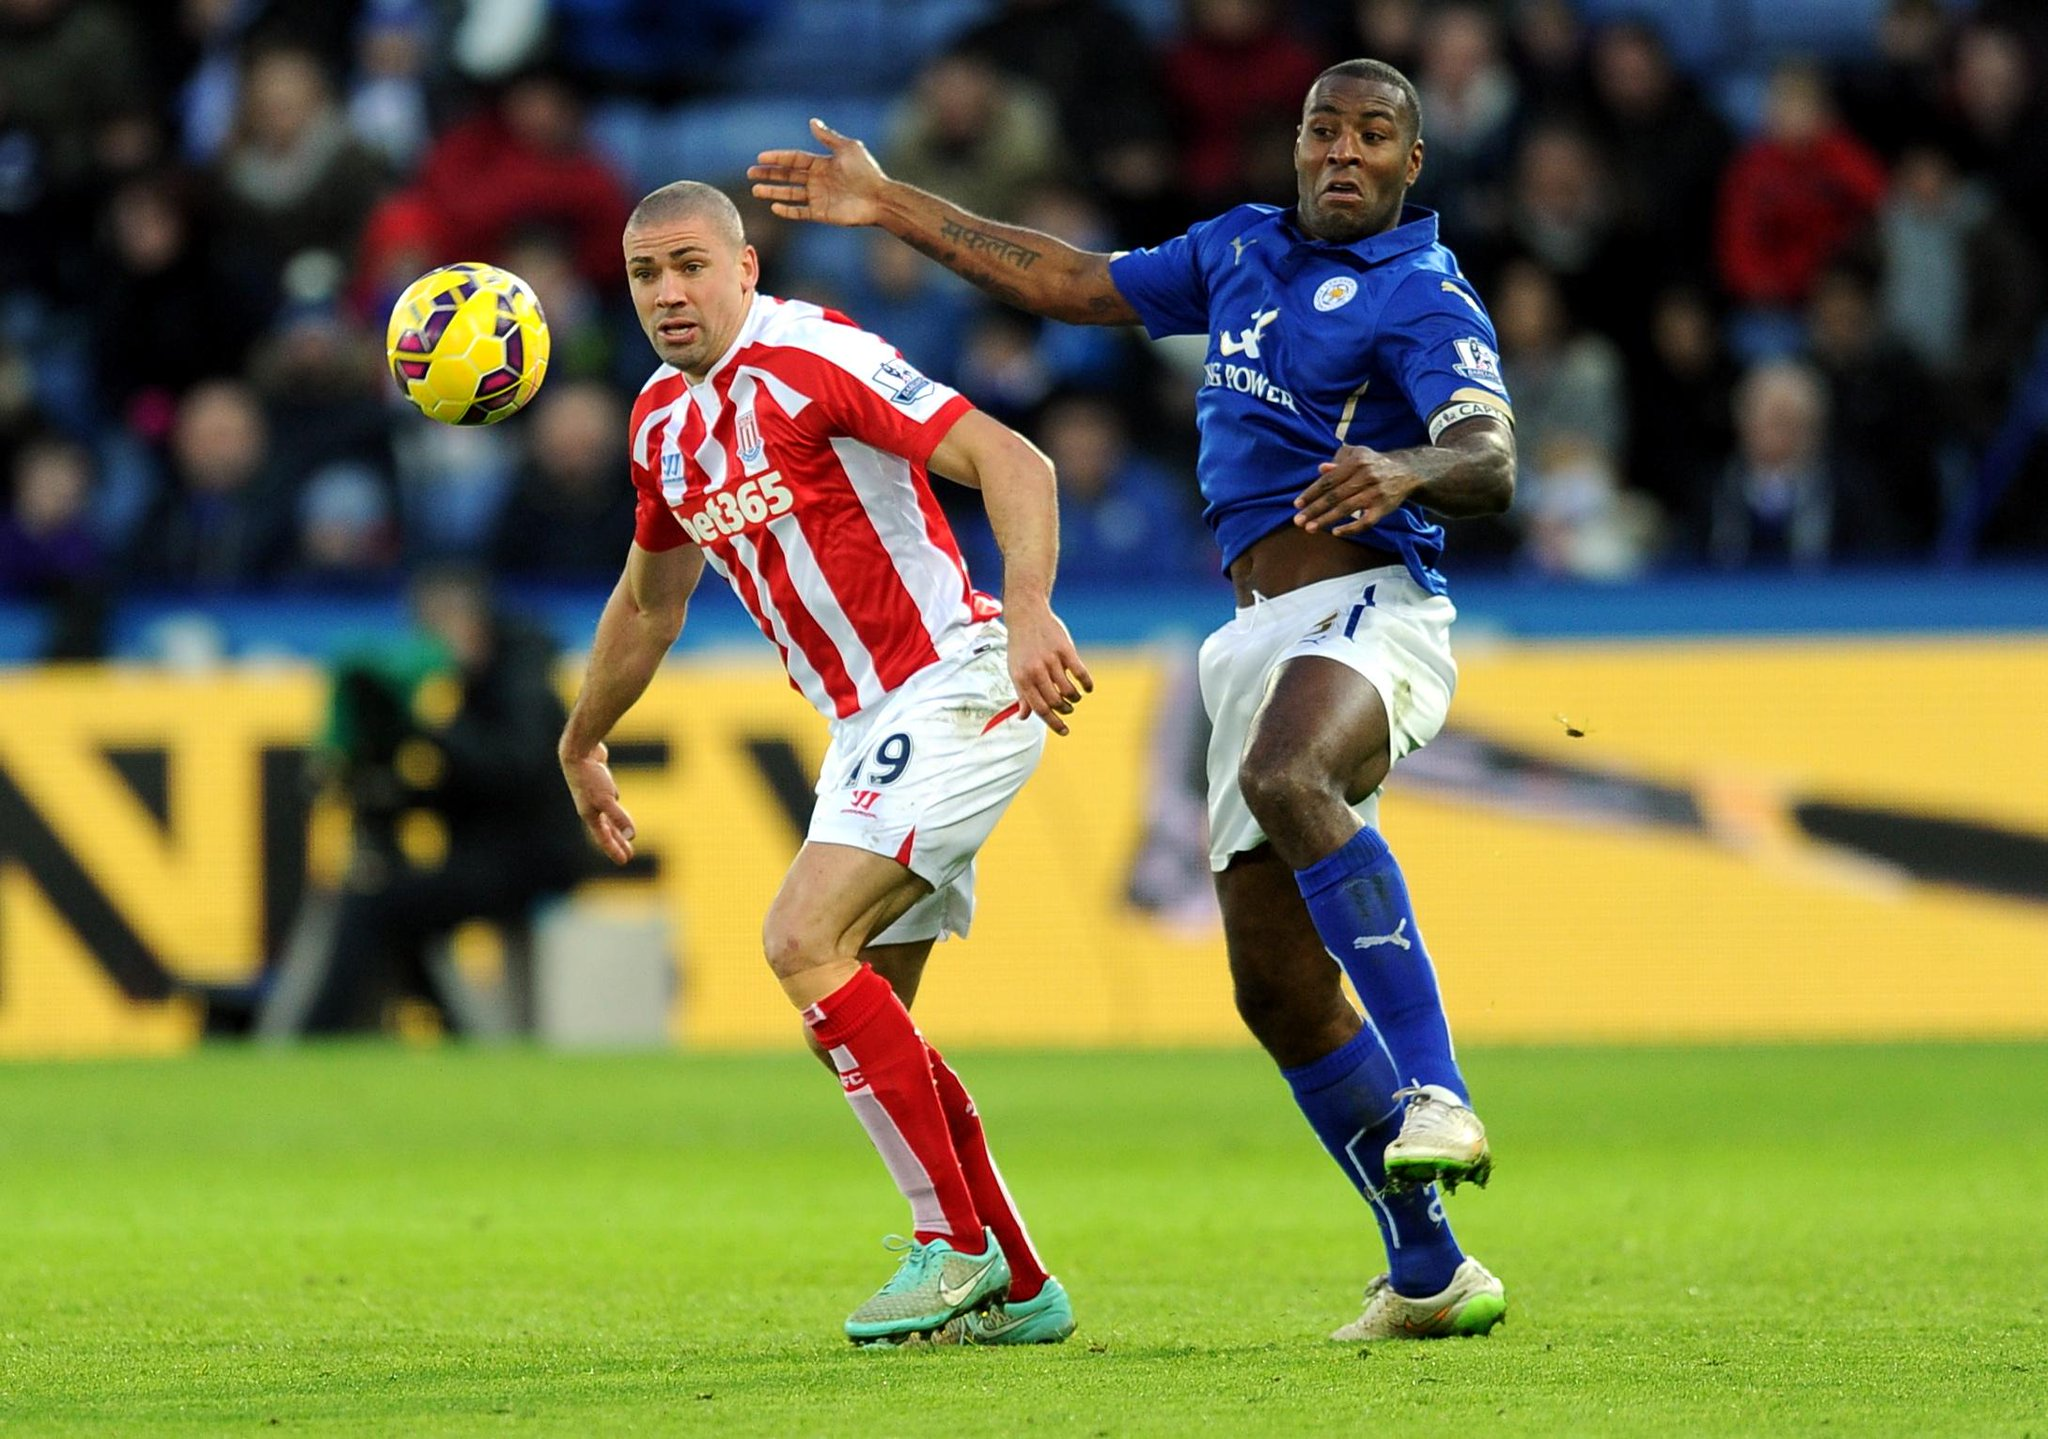 RT @Leicester_Merc: #LCFC express interest in Stoke City's Jonathan Walters http://t.co/ovSVNxjfCL Good move? http://t.co/oi9EzmcAVy